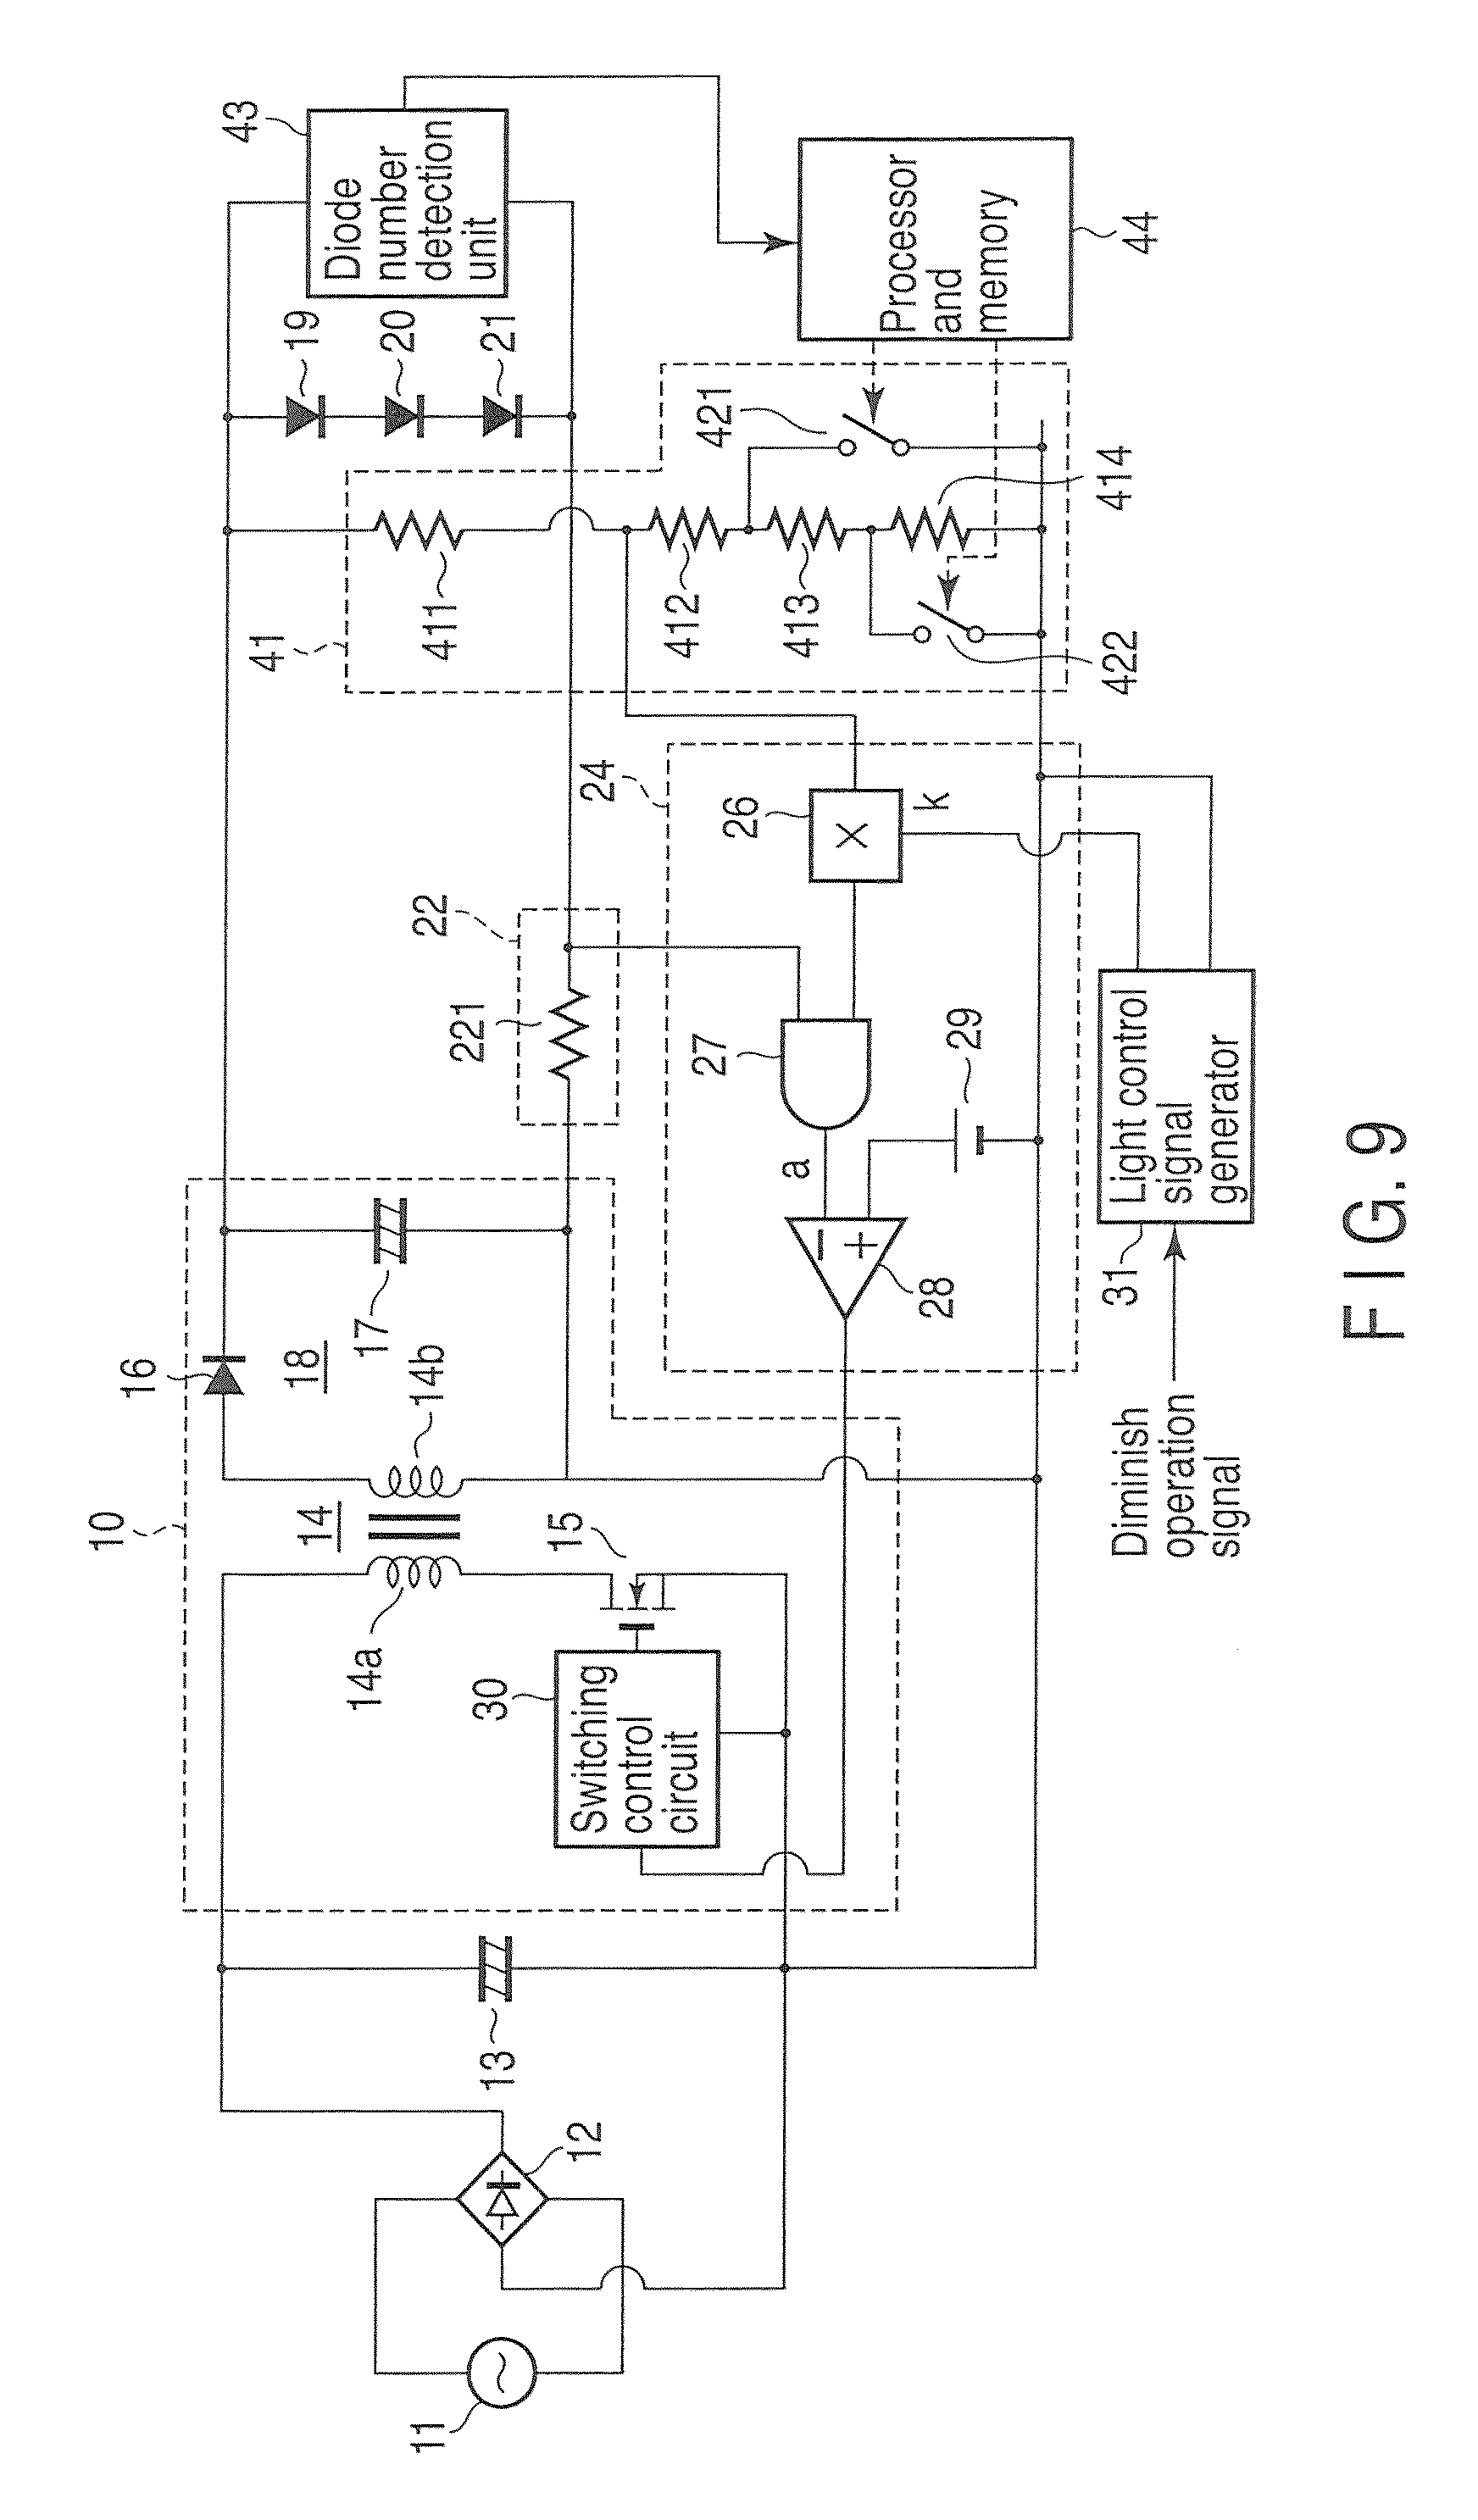 patent us8513902 - power supply unit having dimmer function and lighting unit